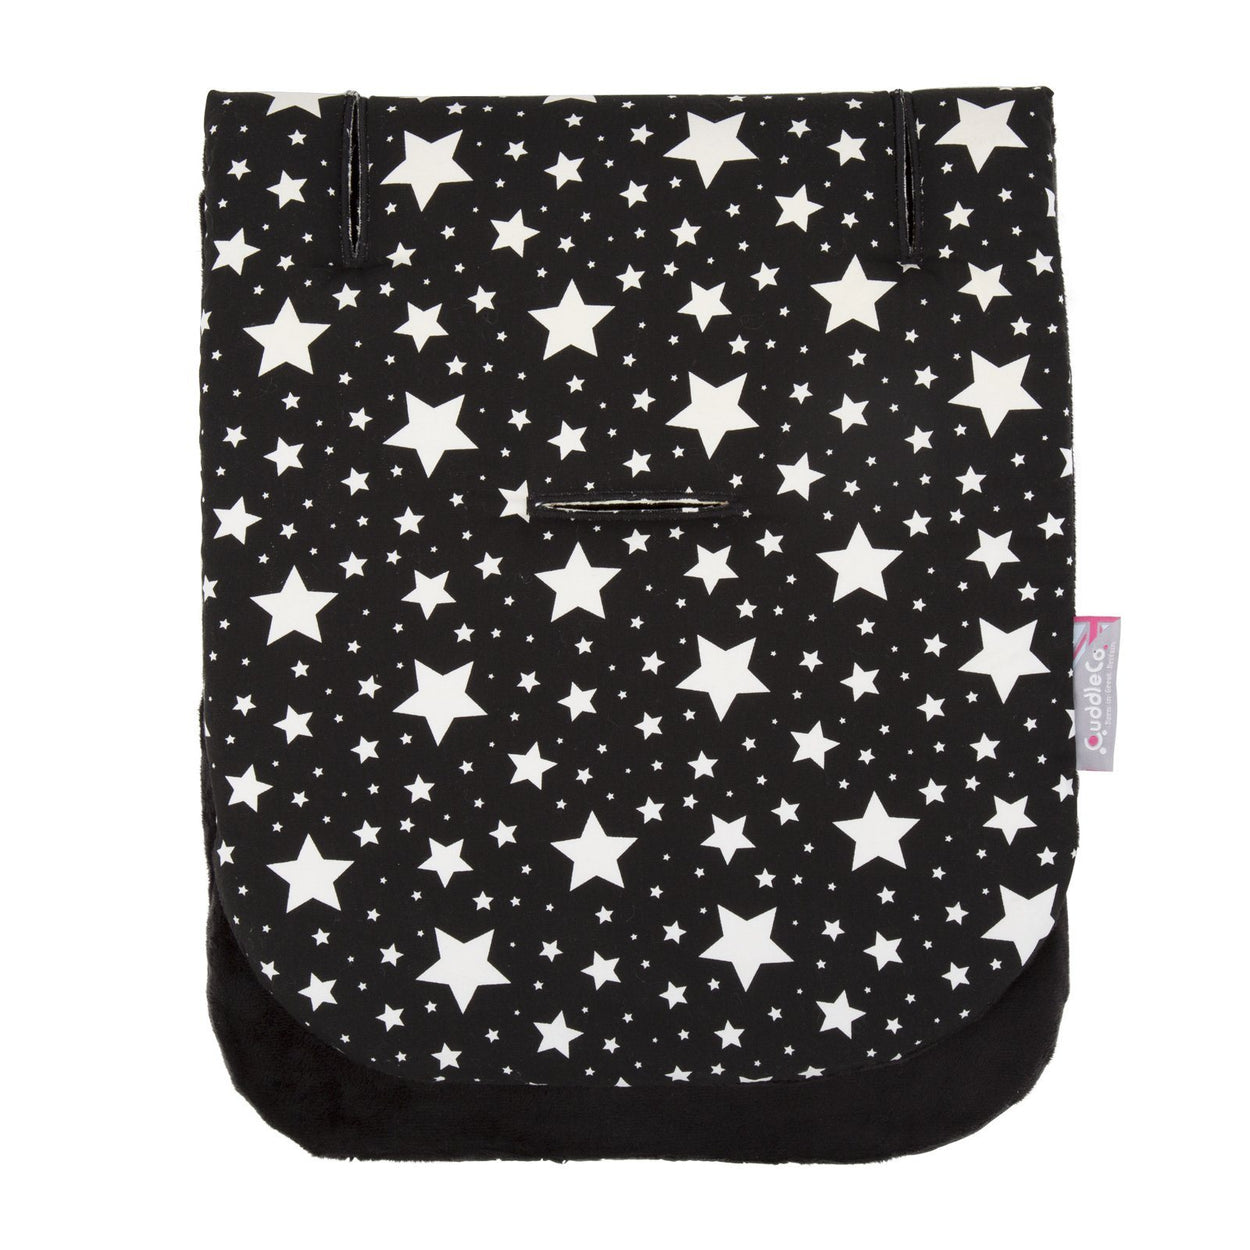 Comfi-Cush Memory Foam Stroller Liner - Stars On The Go cuddleco